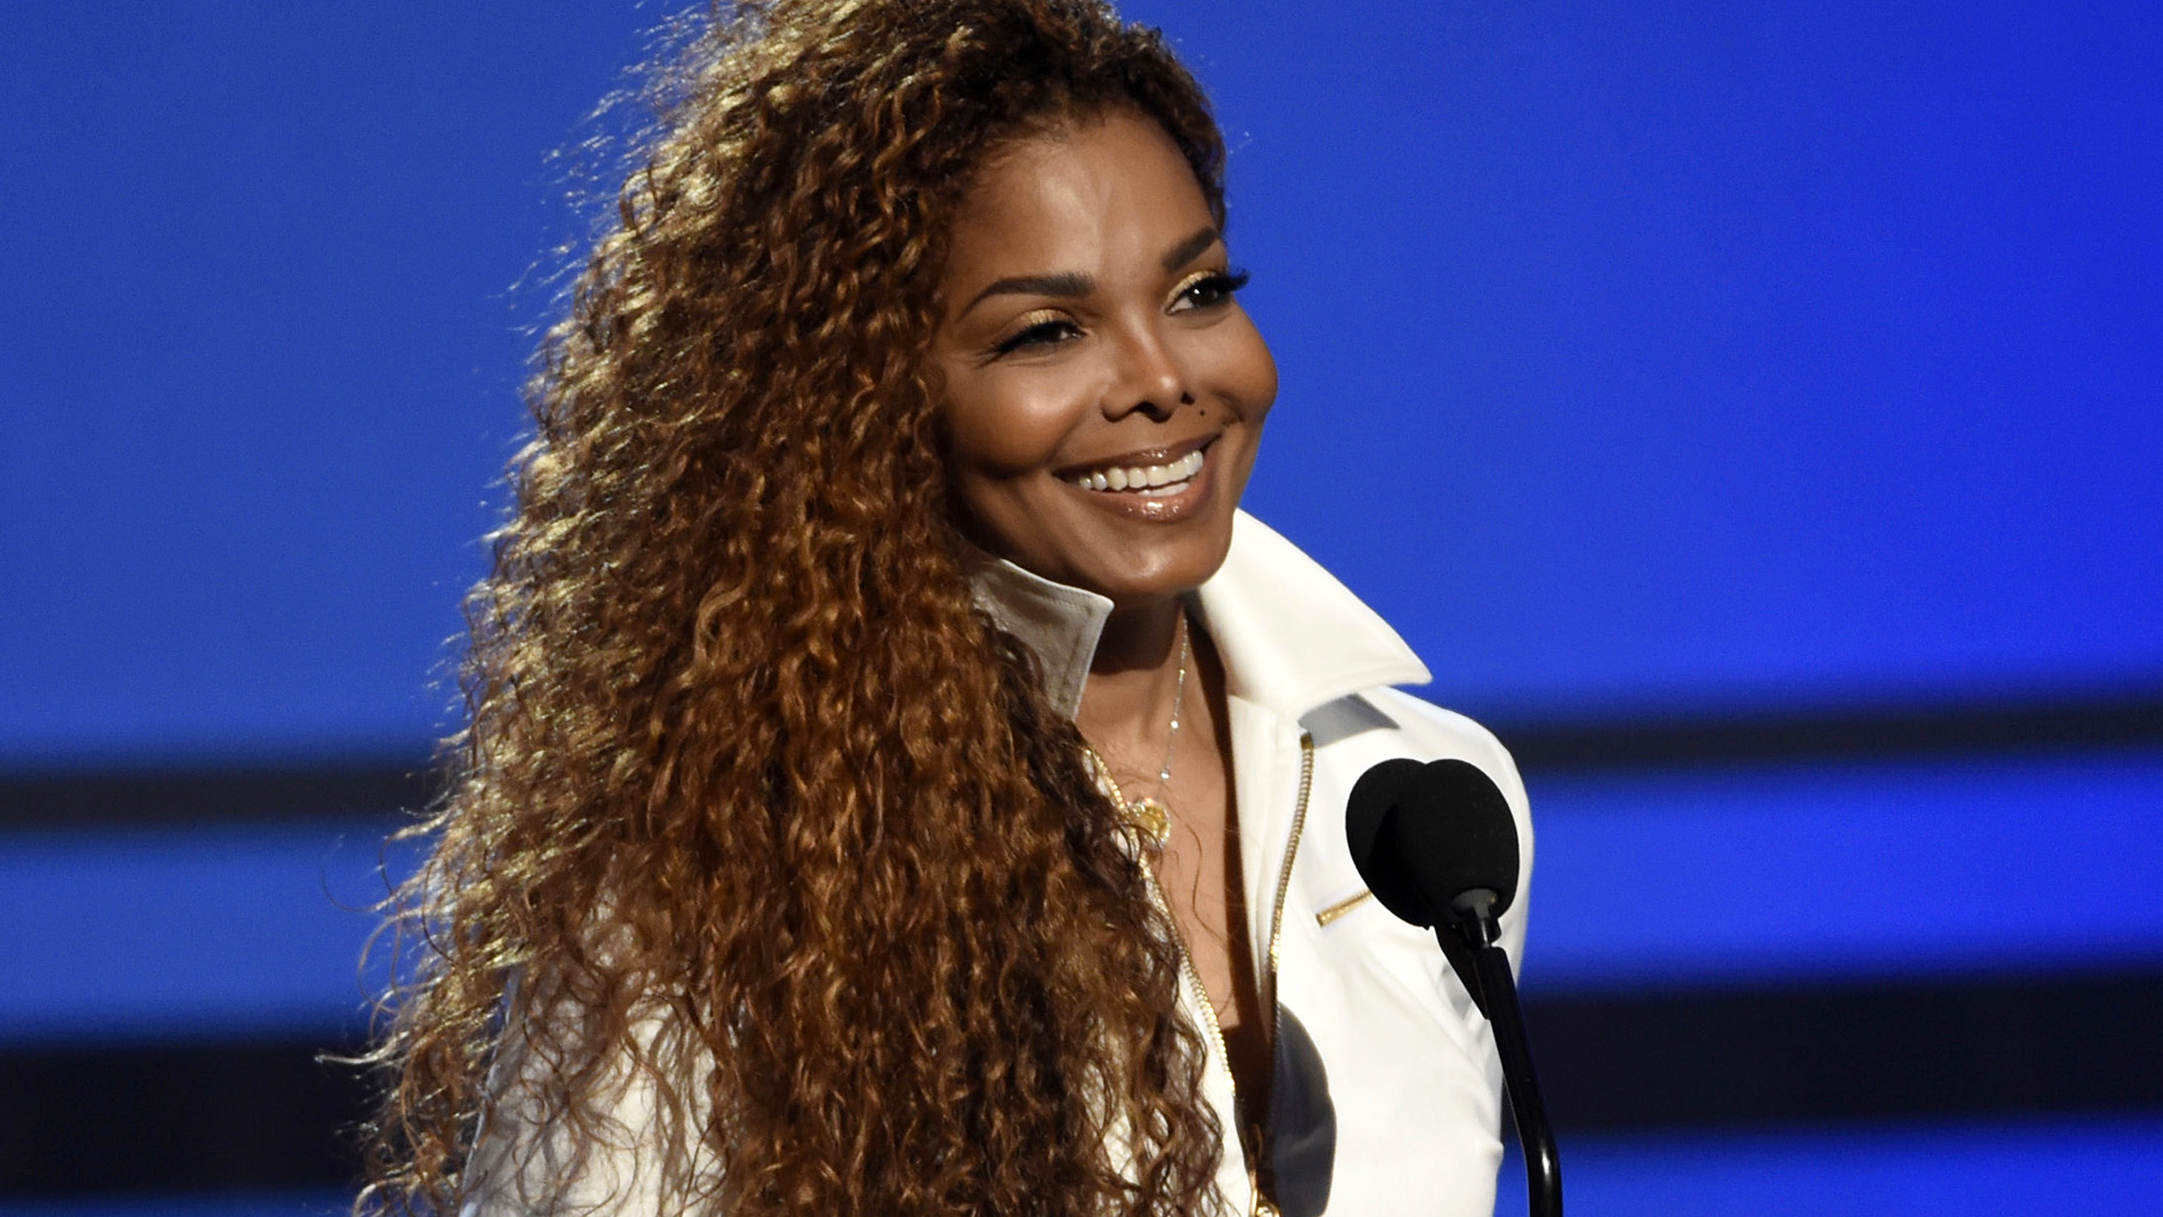 Janet Jackson's 'Control' album reenters chart after 35 years: 'I began to cry' - Fox News